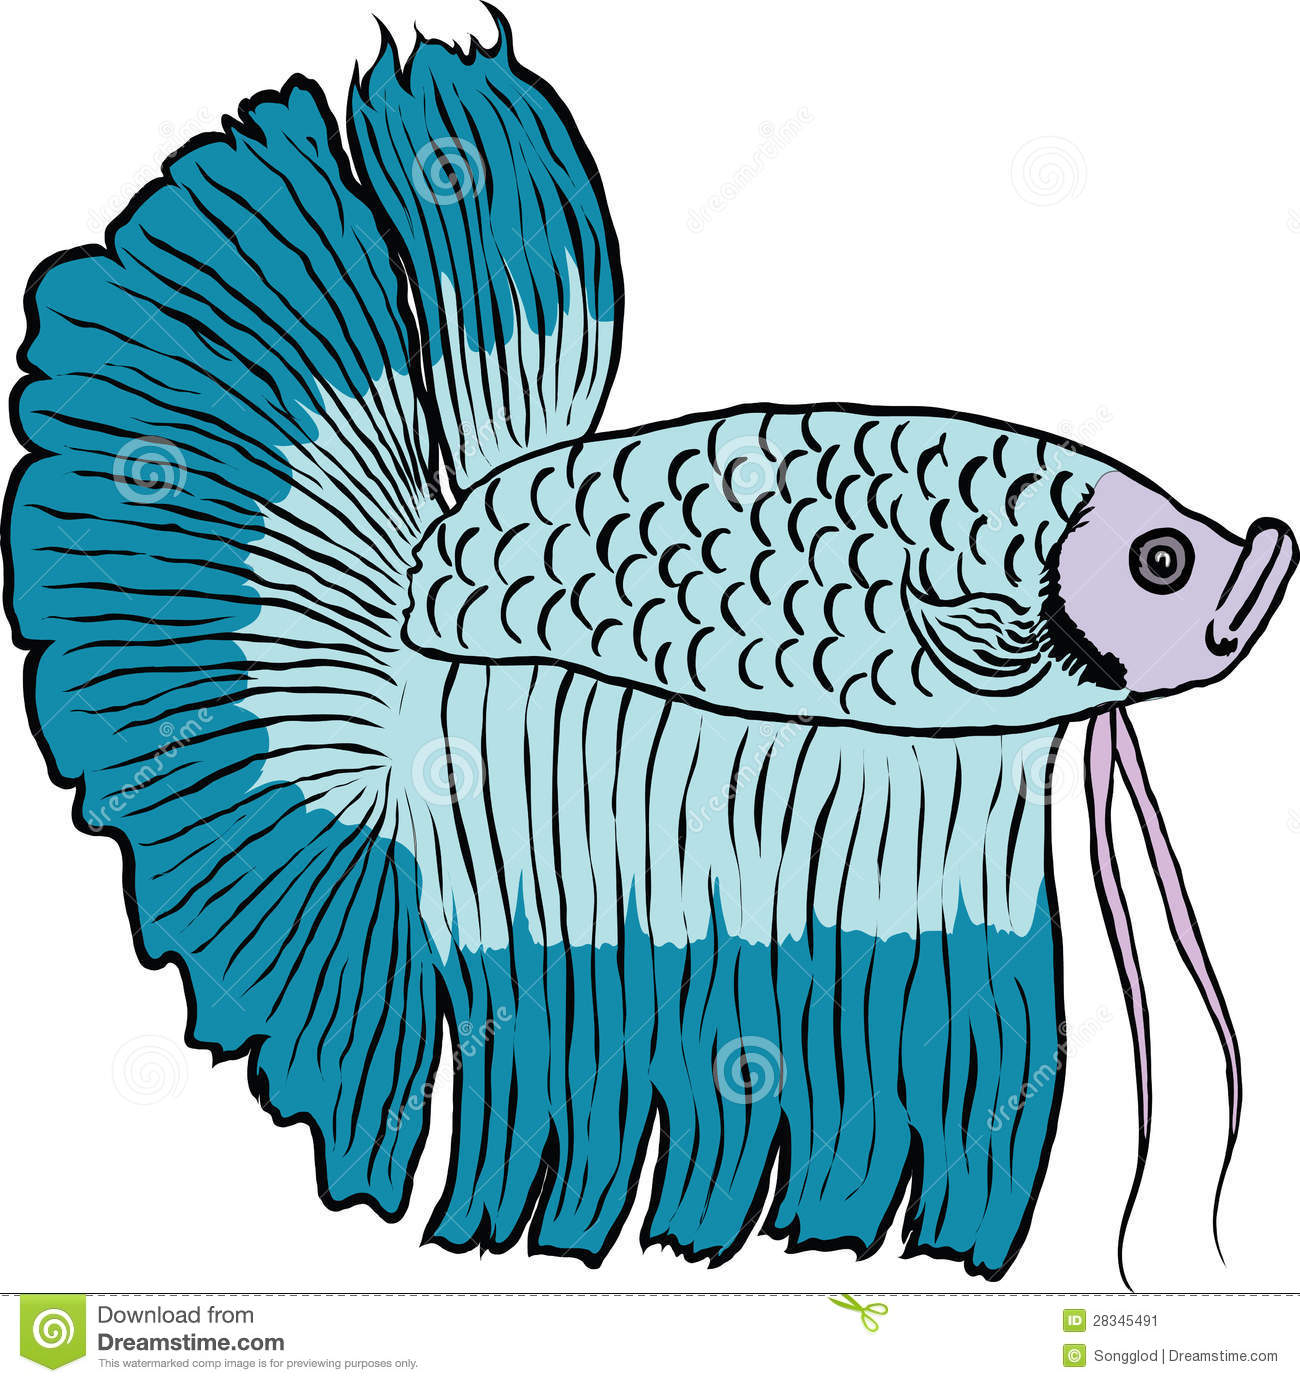 Siamese Fighting Fish clipart #1, Download drawings